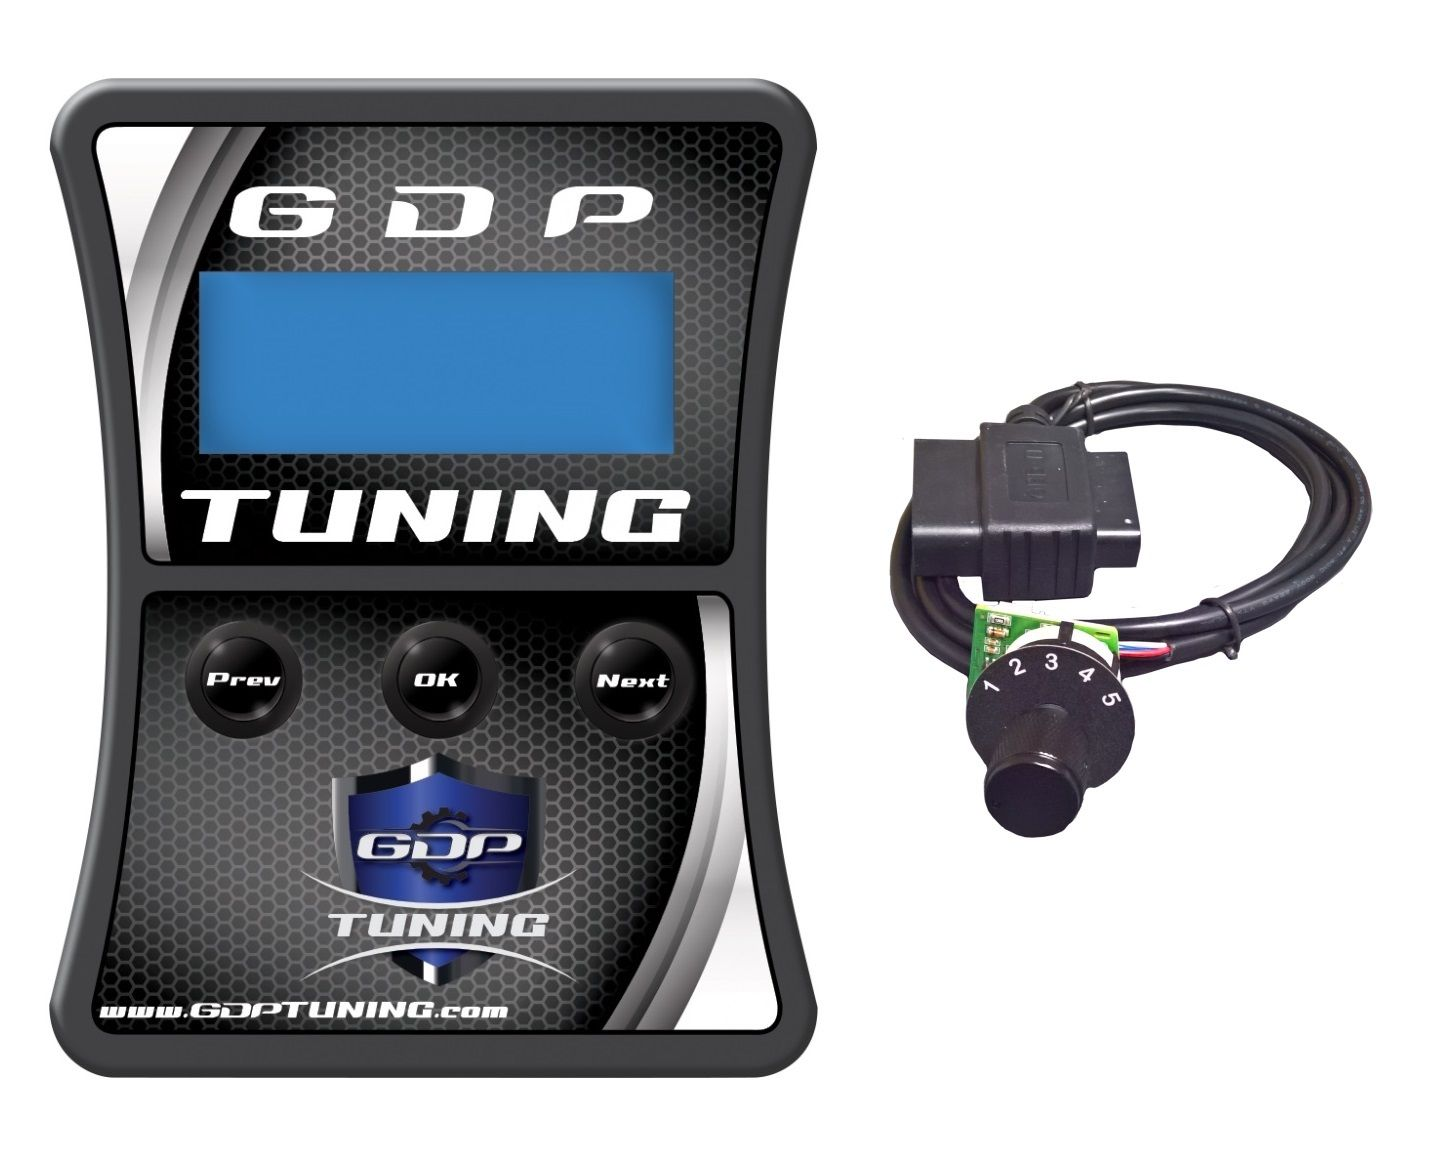 Details about GDP EFI Live AutoCal Tuner & CSP5 Switch For 2010-2012 Dodge  6 7 Cummins Diesel